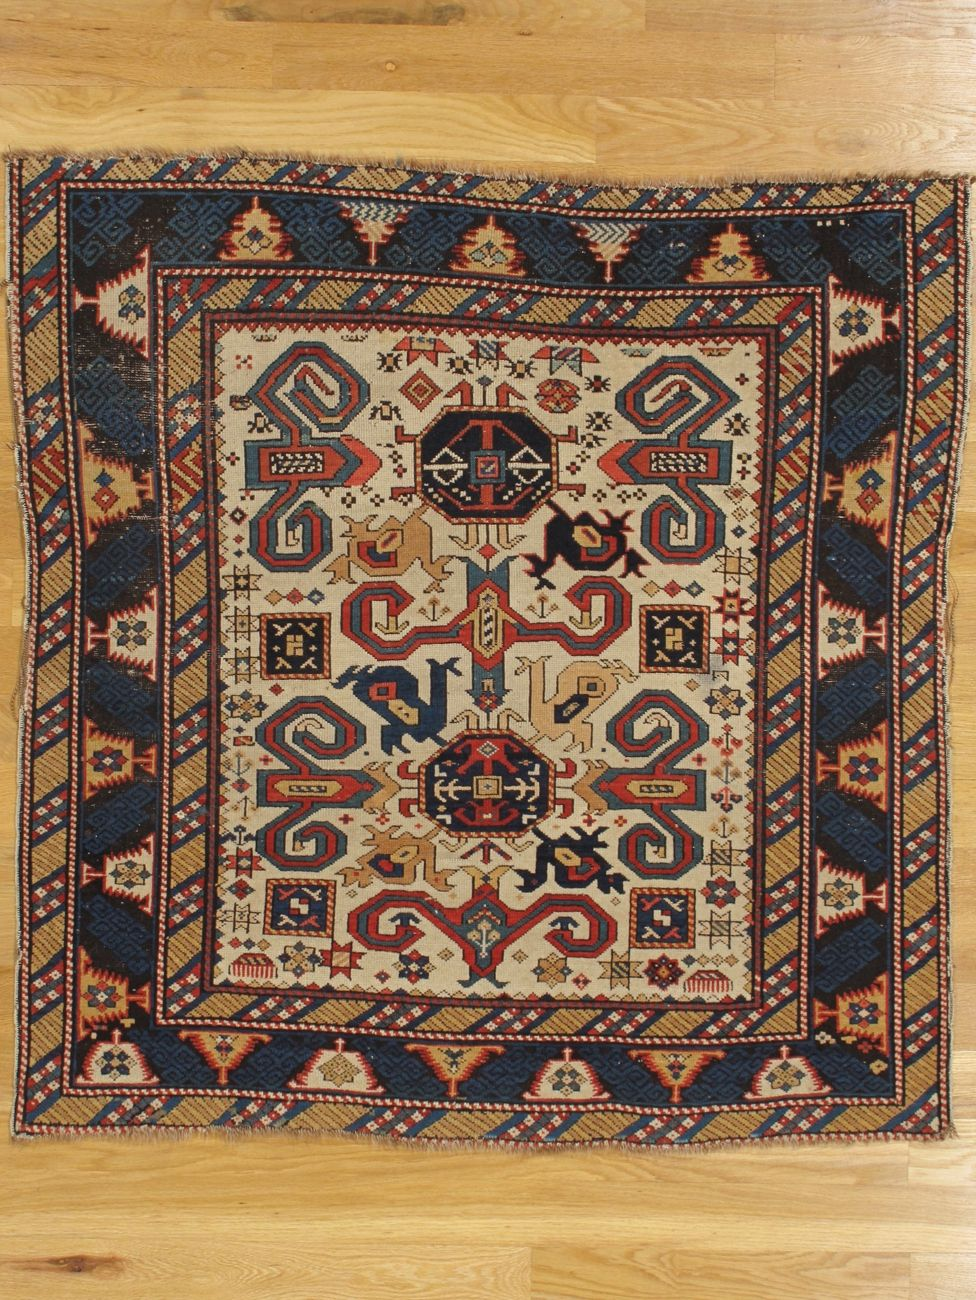 Hagop Manoyan Antique Rugs New York Provides The Finest Selection Of Handmade Caucasian Anatolian And Persian Available